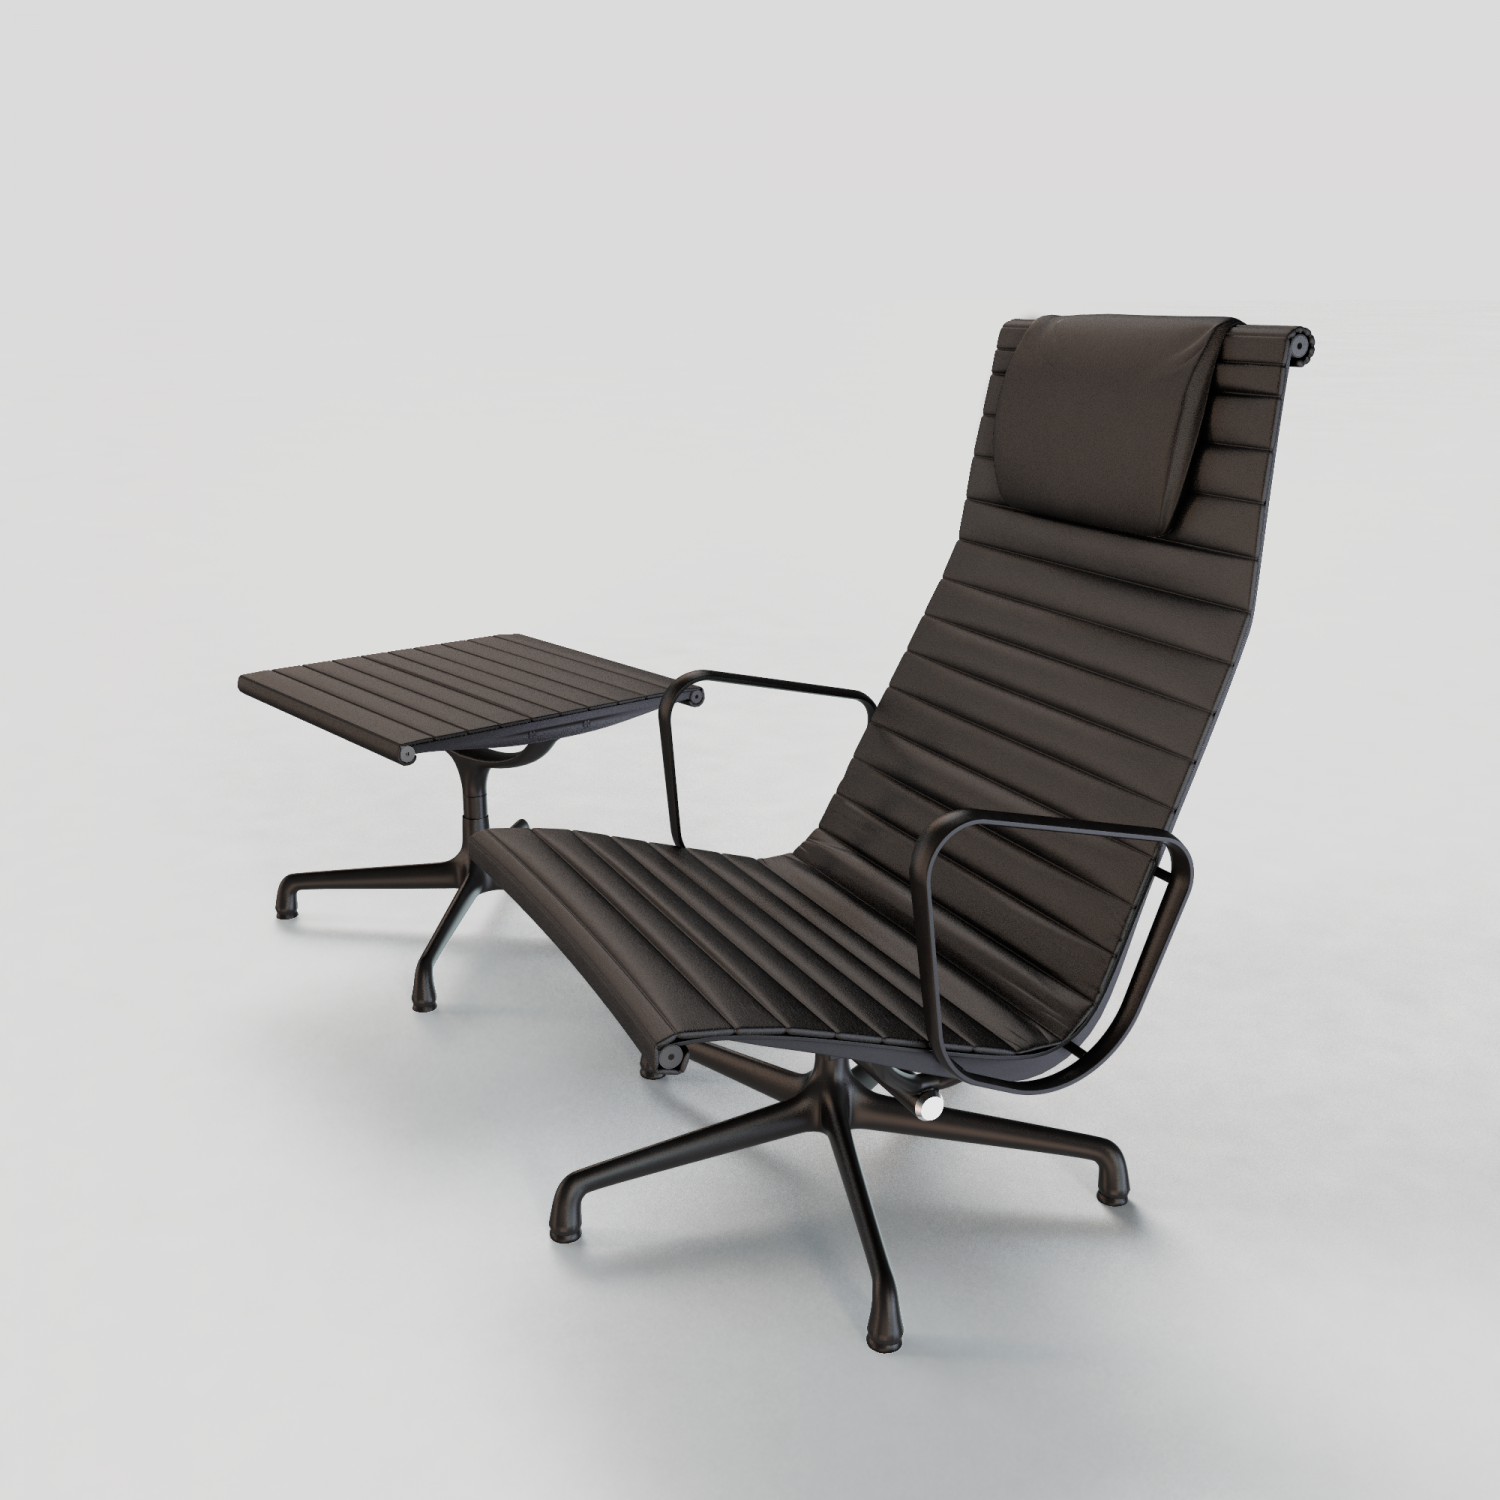 Eames Aluminum Group Lounge Chair 3d Model In Chair 3dexport